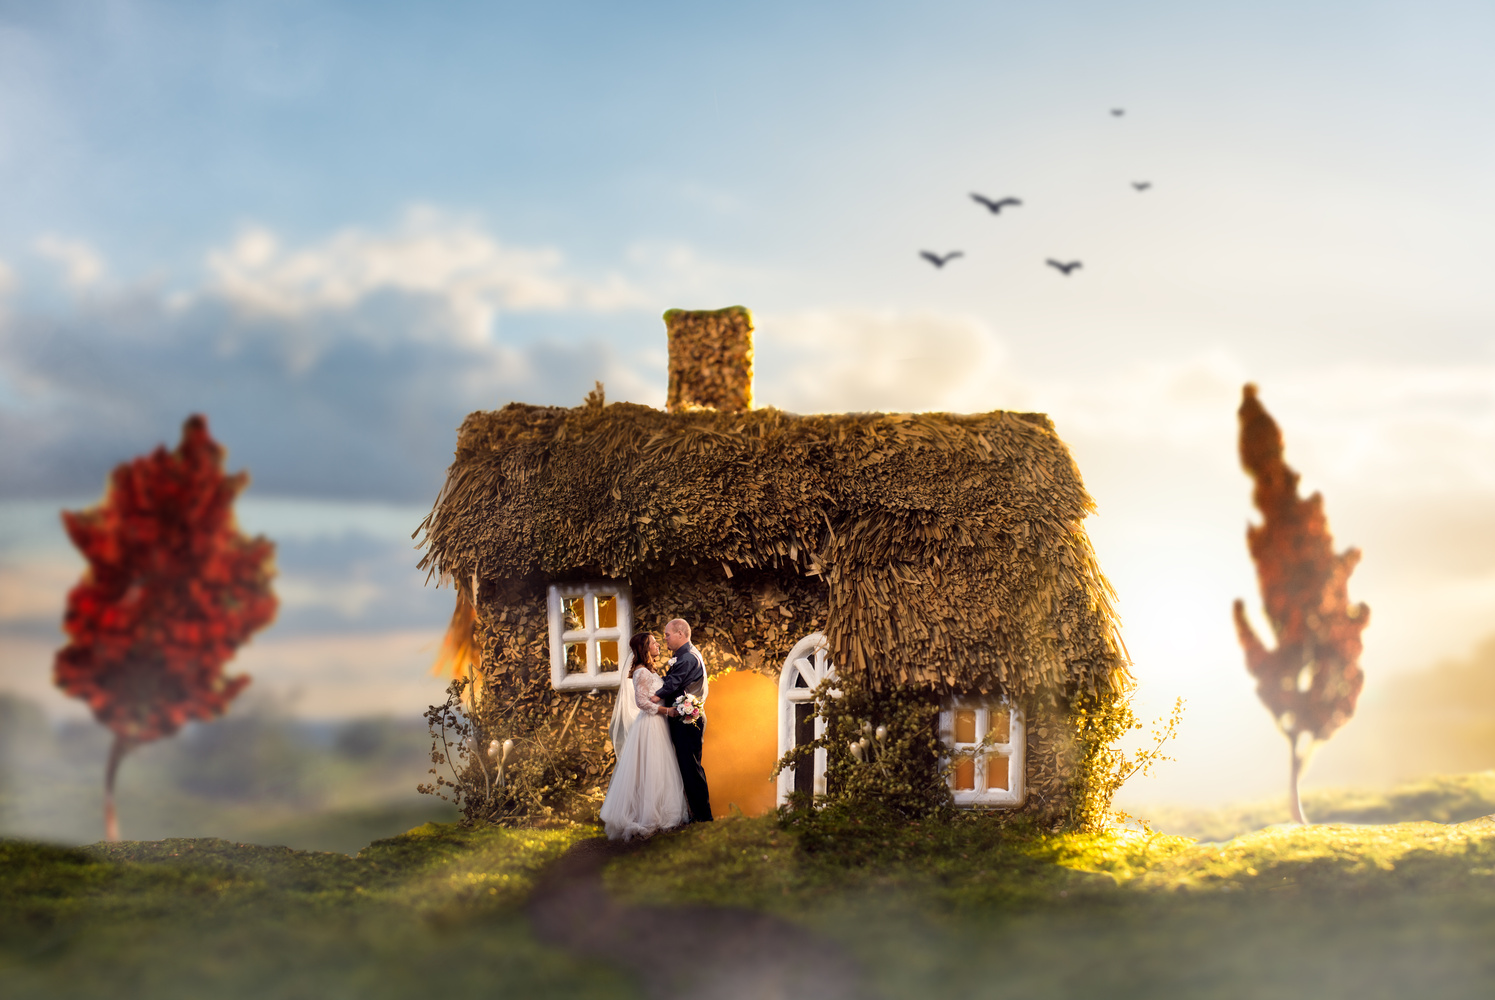 Happily Ever After by Amanda Campbell